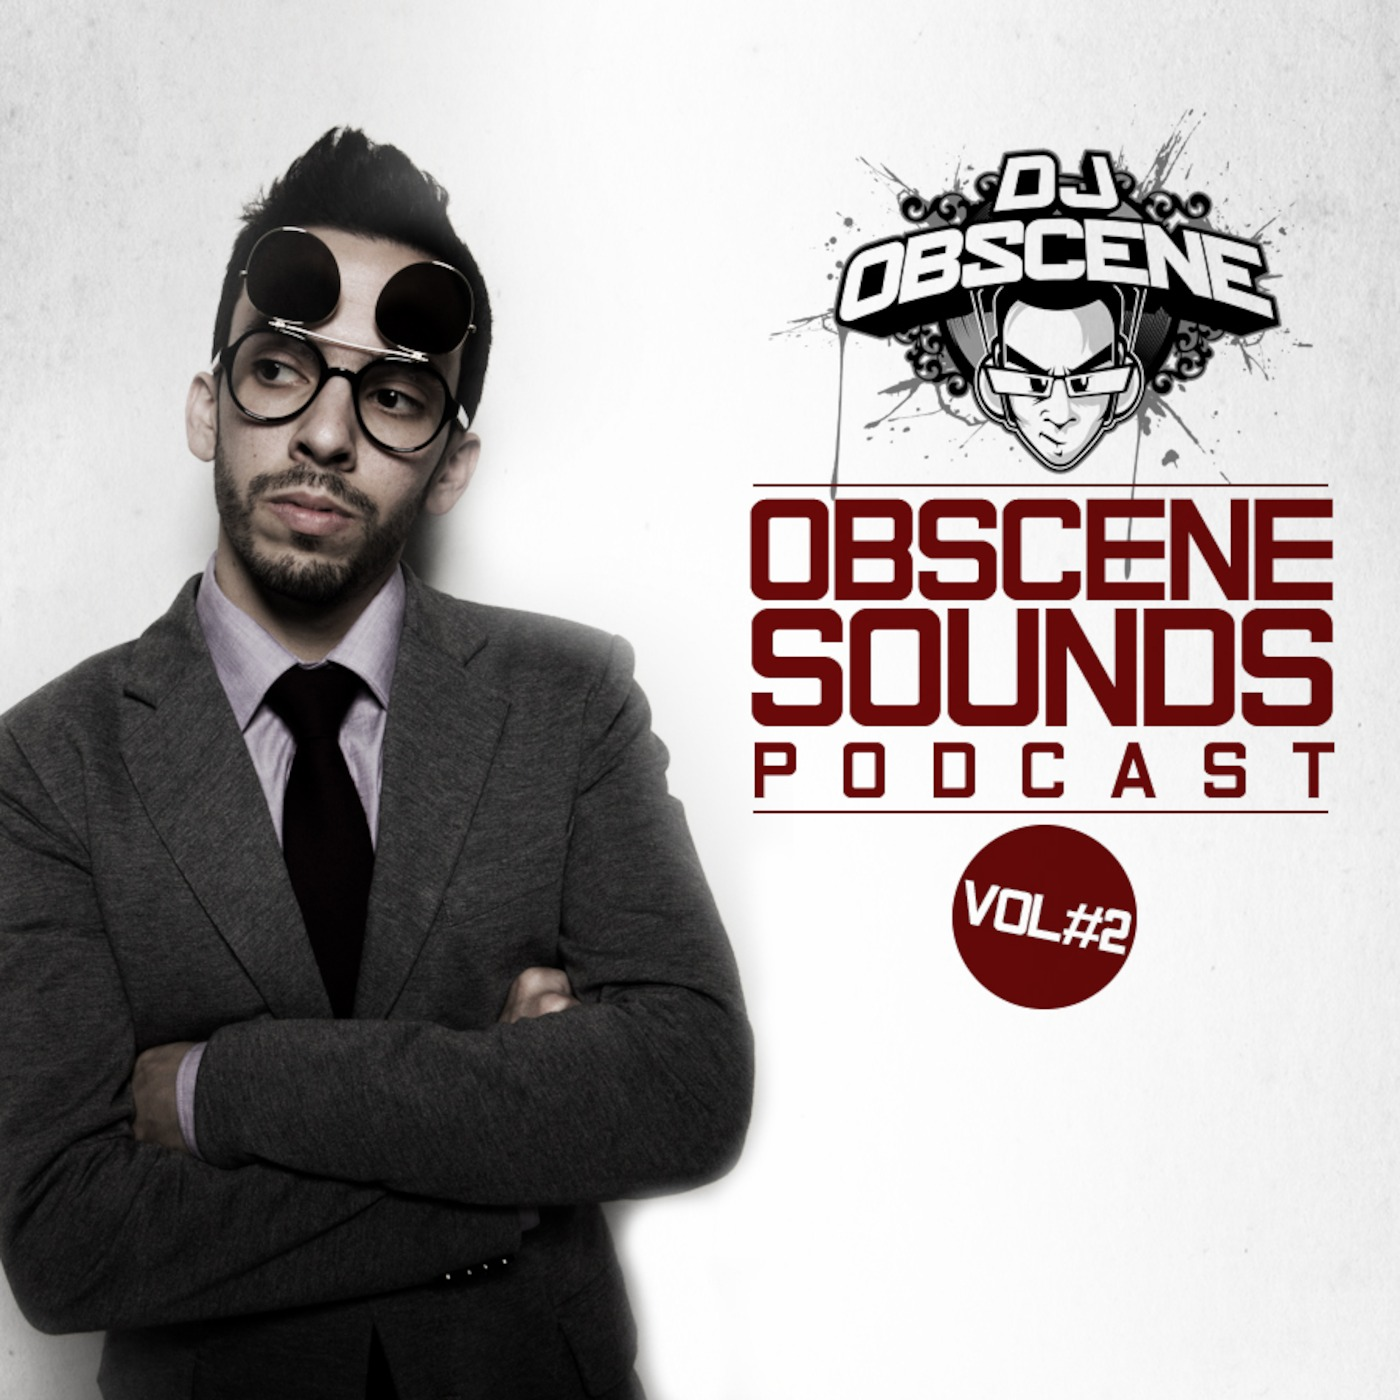 Obscene Sounds Podcast